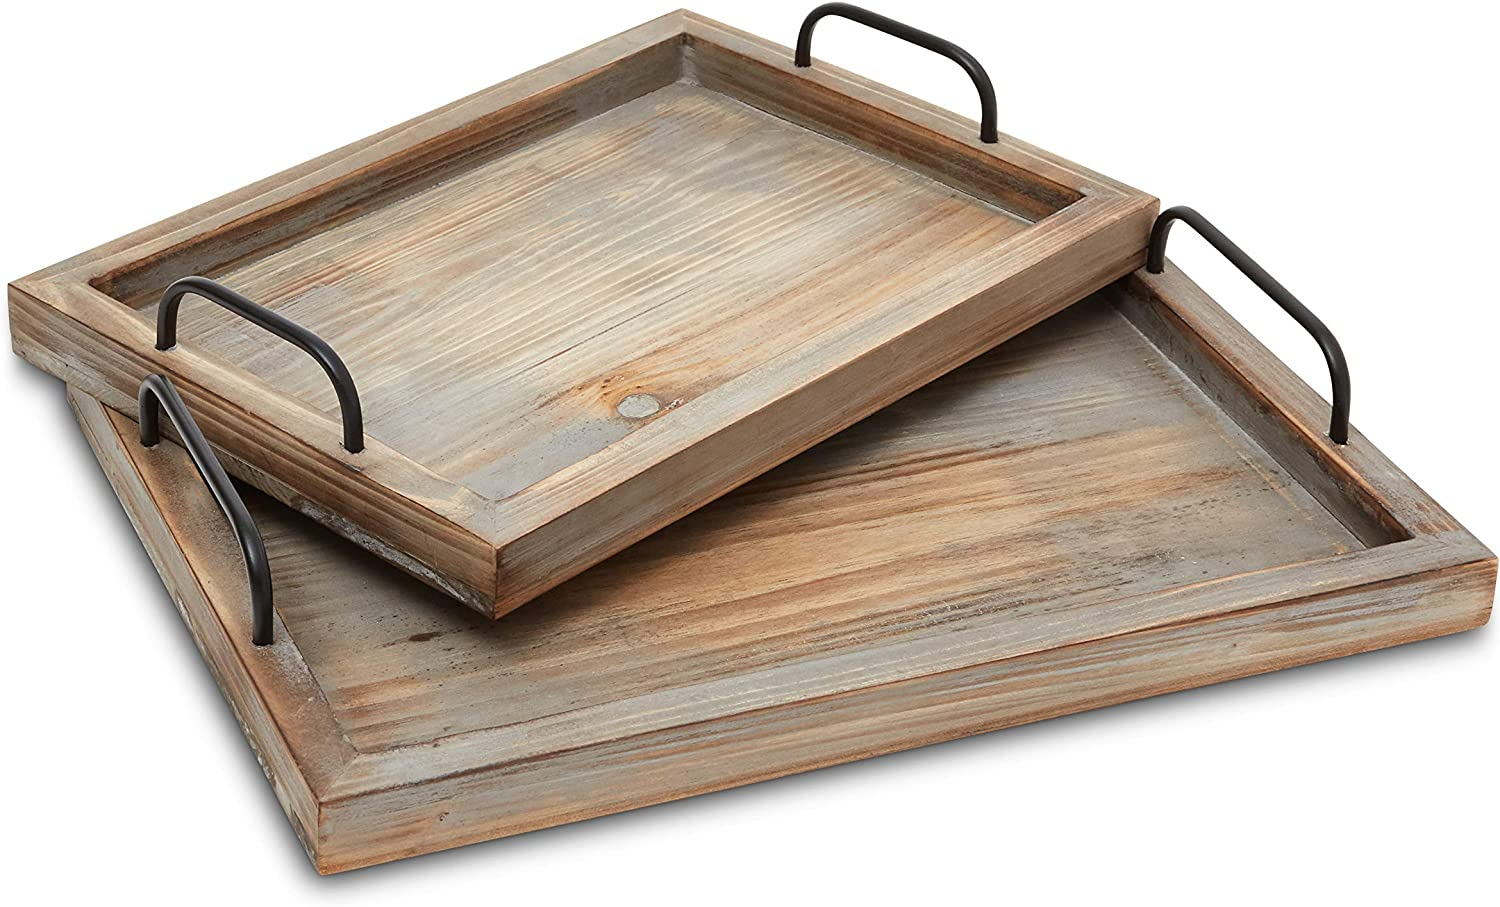 Decorative Ottoman Serving Tray - Kitchen/Coffee Table/Home Decor/Breakfast Trays - Wooden Server Platter - Rustic Country Platters - Wood Server - Farmhouse Decor - Kitchen Decor - Wood Platter